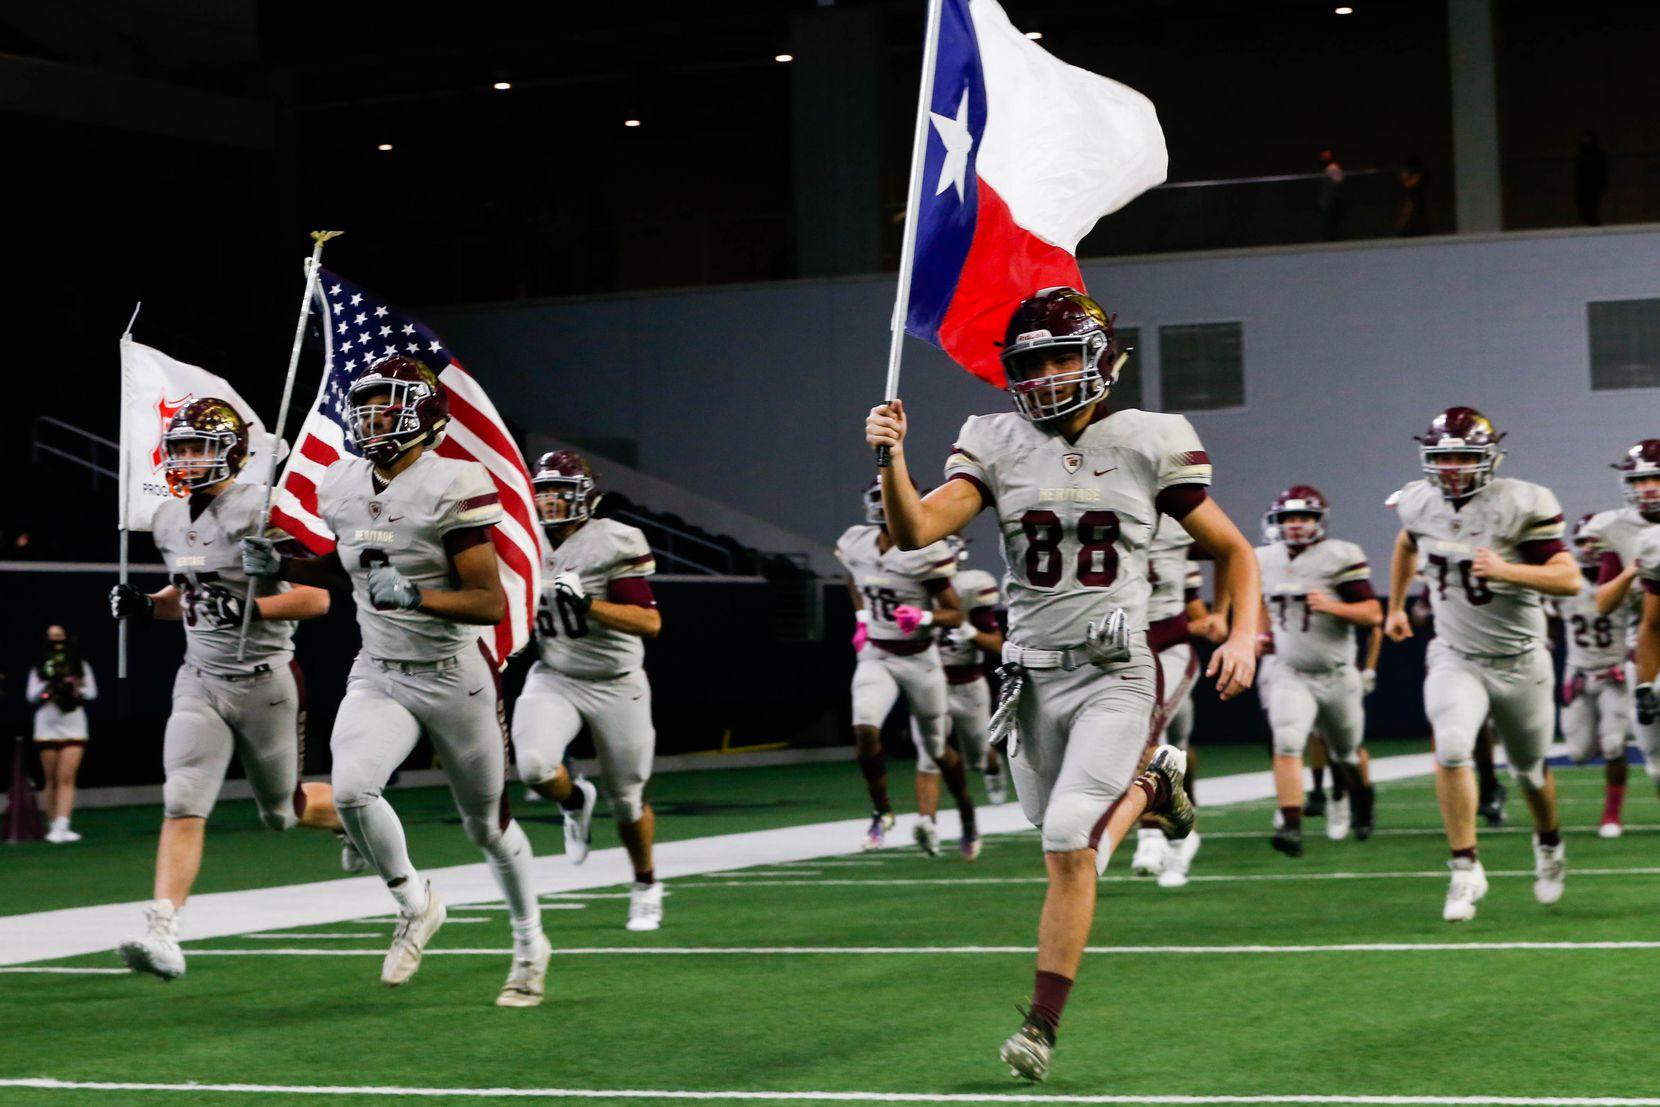 Frisco Heritage football players run out before the start of a game against Frisco Independence at the Ford Center at the Star in Frisco on Thursday, Dec. 3, 2020. (Juan Figueroa/ The Dallas Morning News)